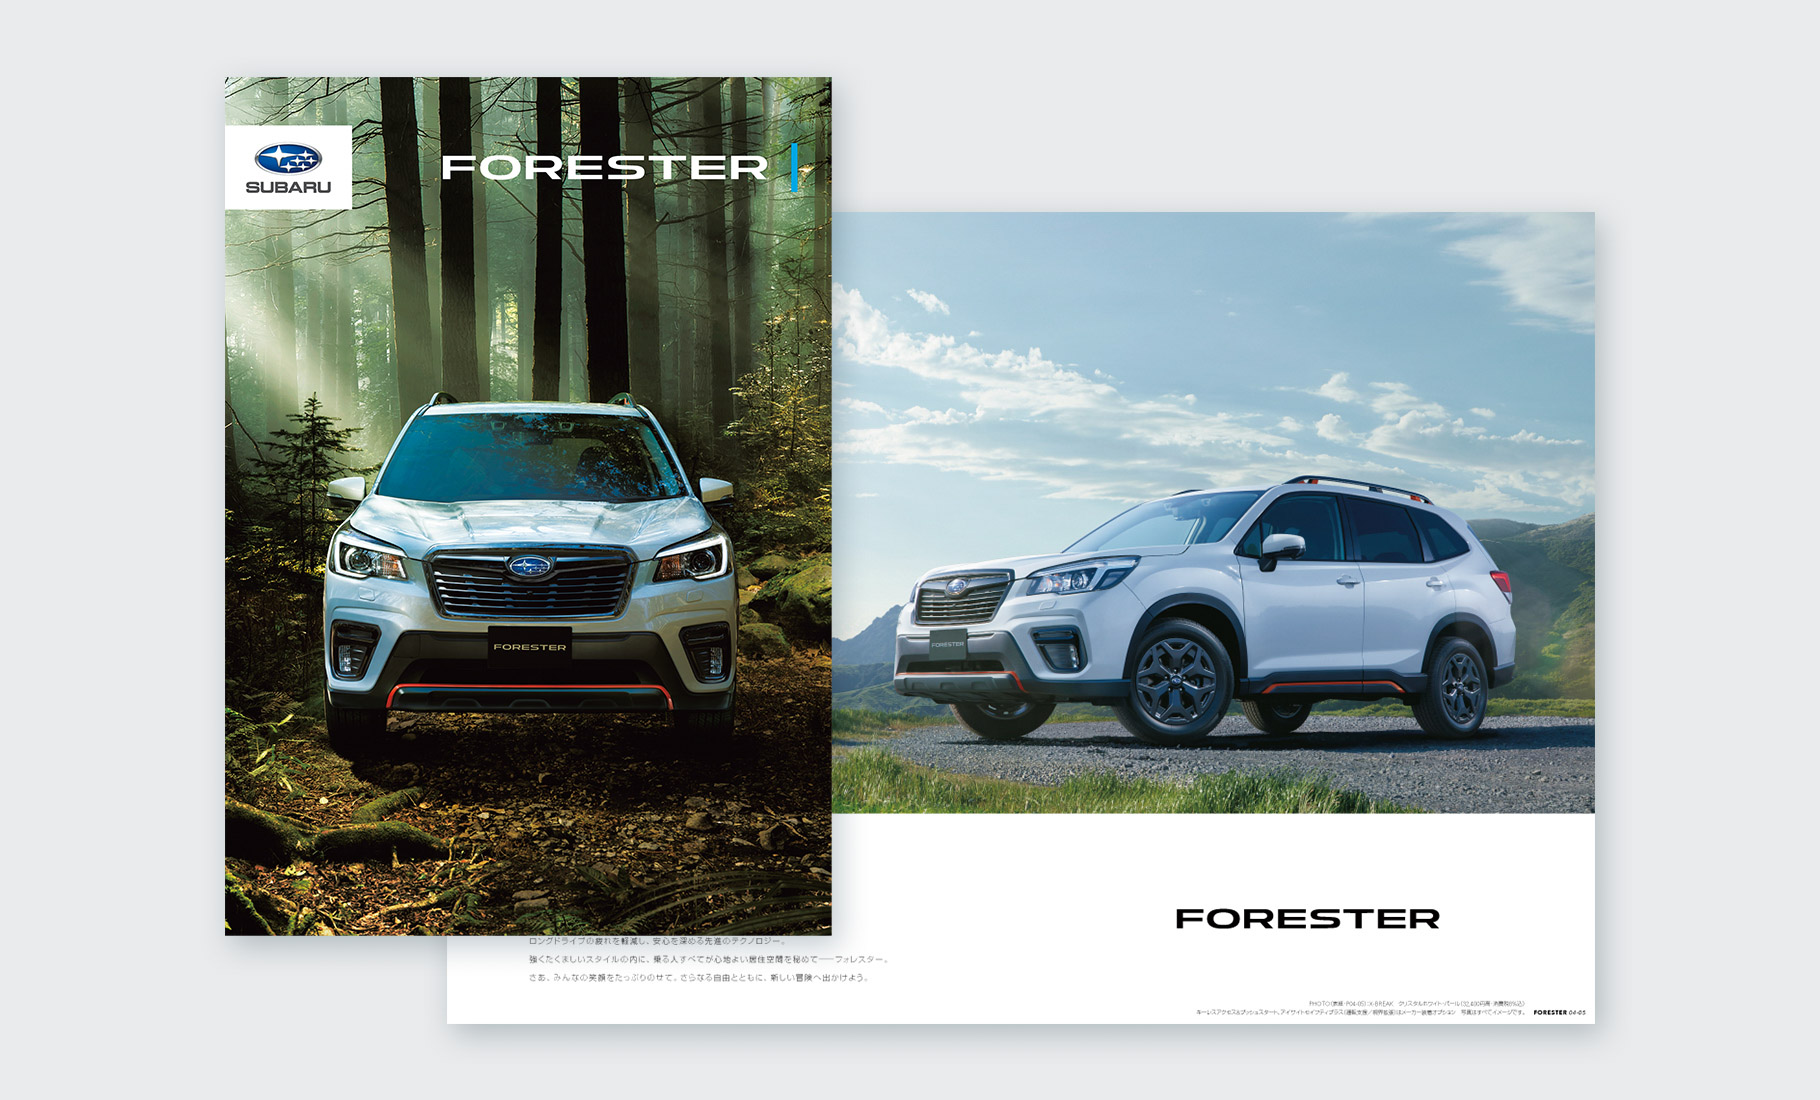 FORESTER カタログ